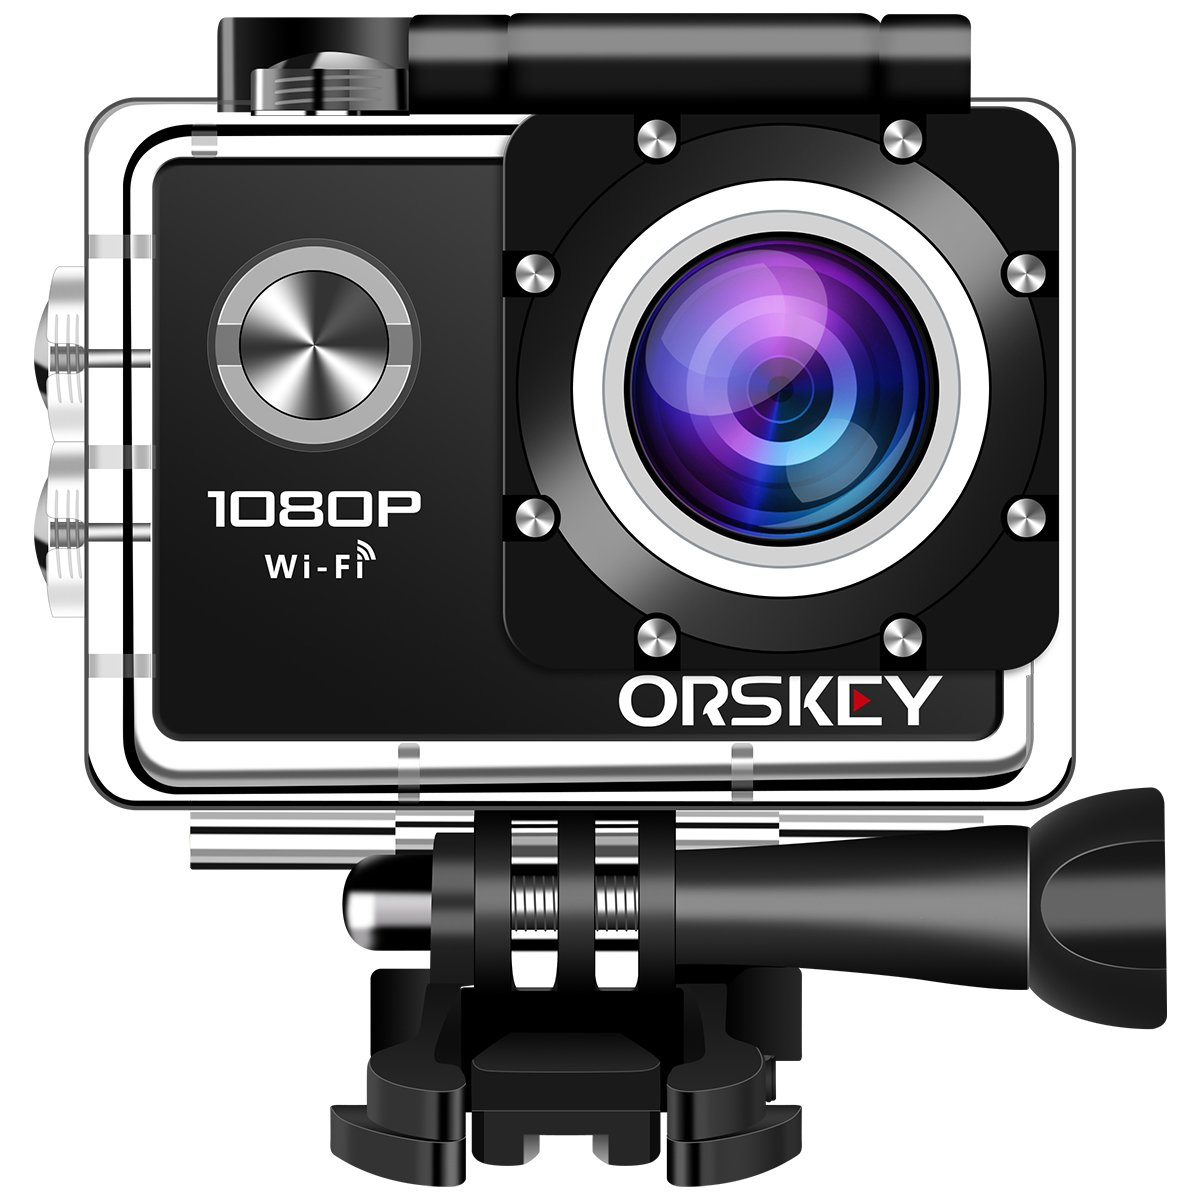 ORSKEY Action Camera 1080P Wifi Underwater Cam Full HD 12MP Sports Camera Waterproof 30m 170 Wide-Angle Lens with 2 Rechargeable Batteries and Mounting Accessory Kits by ORSKEY